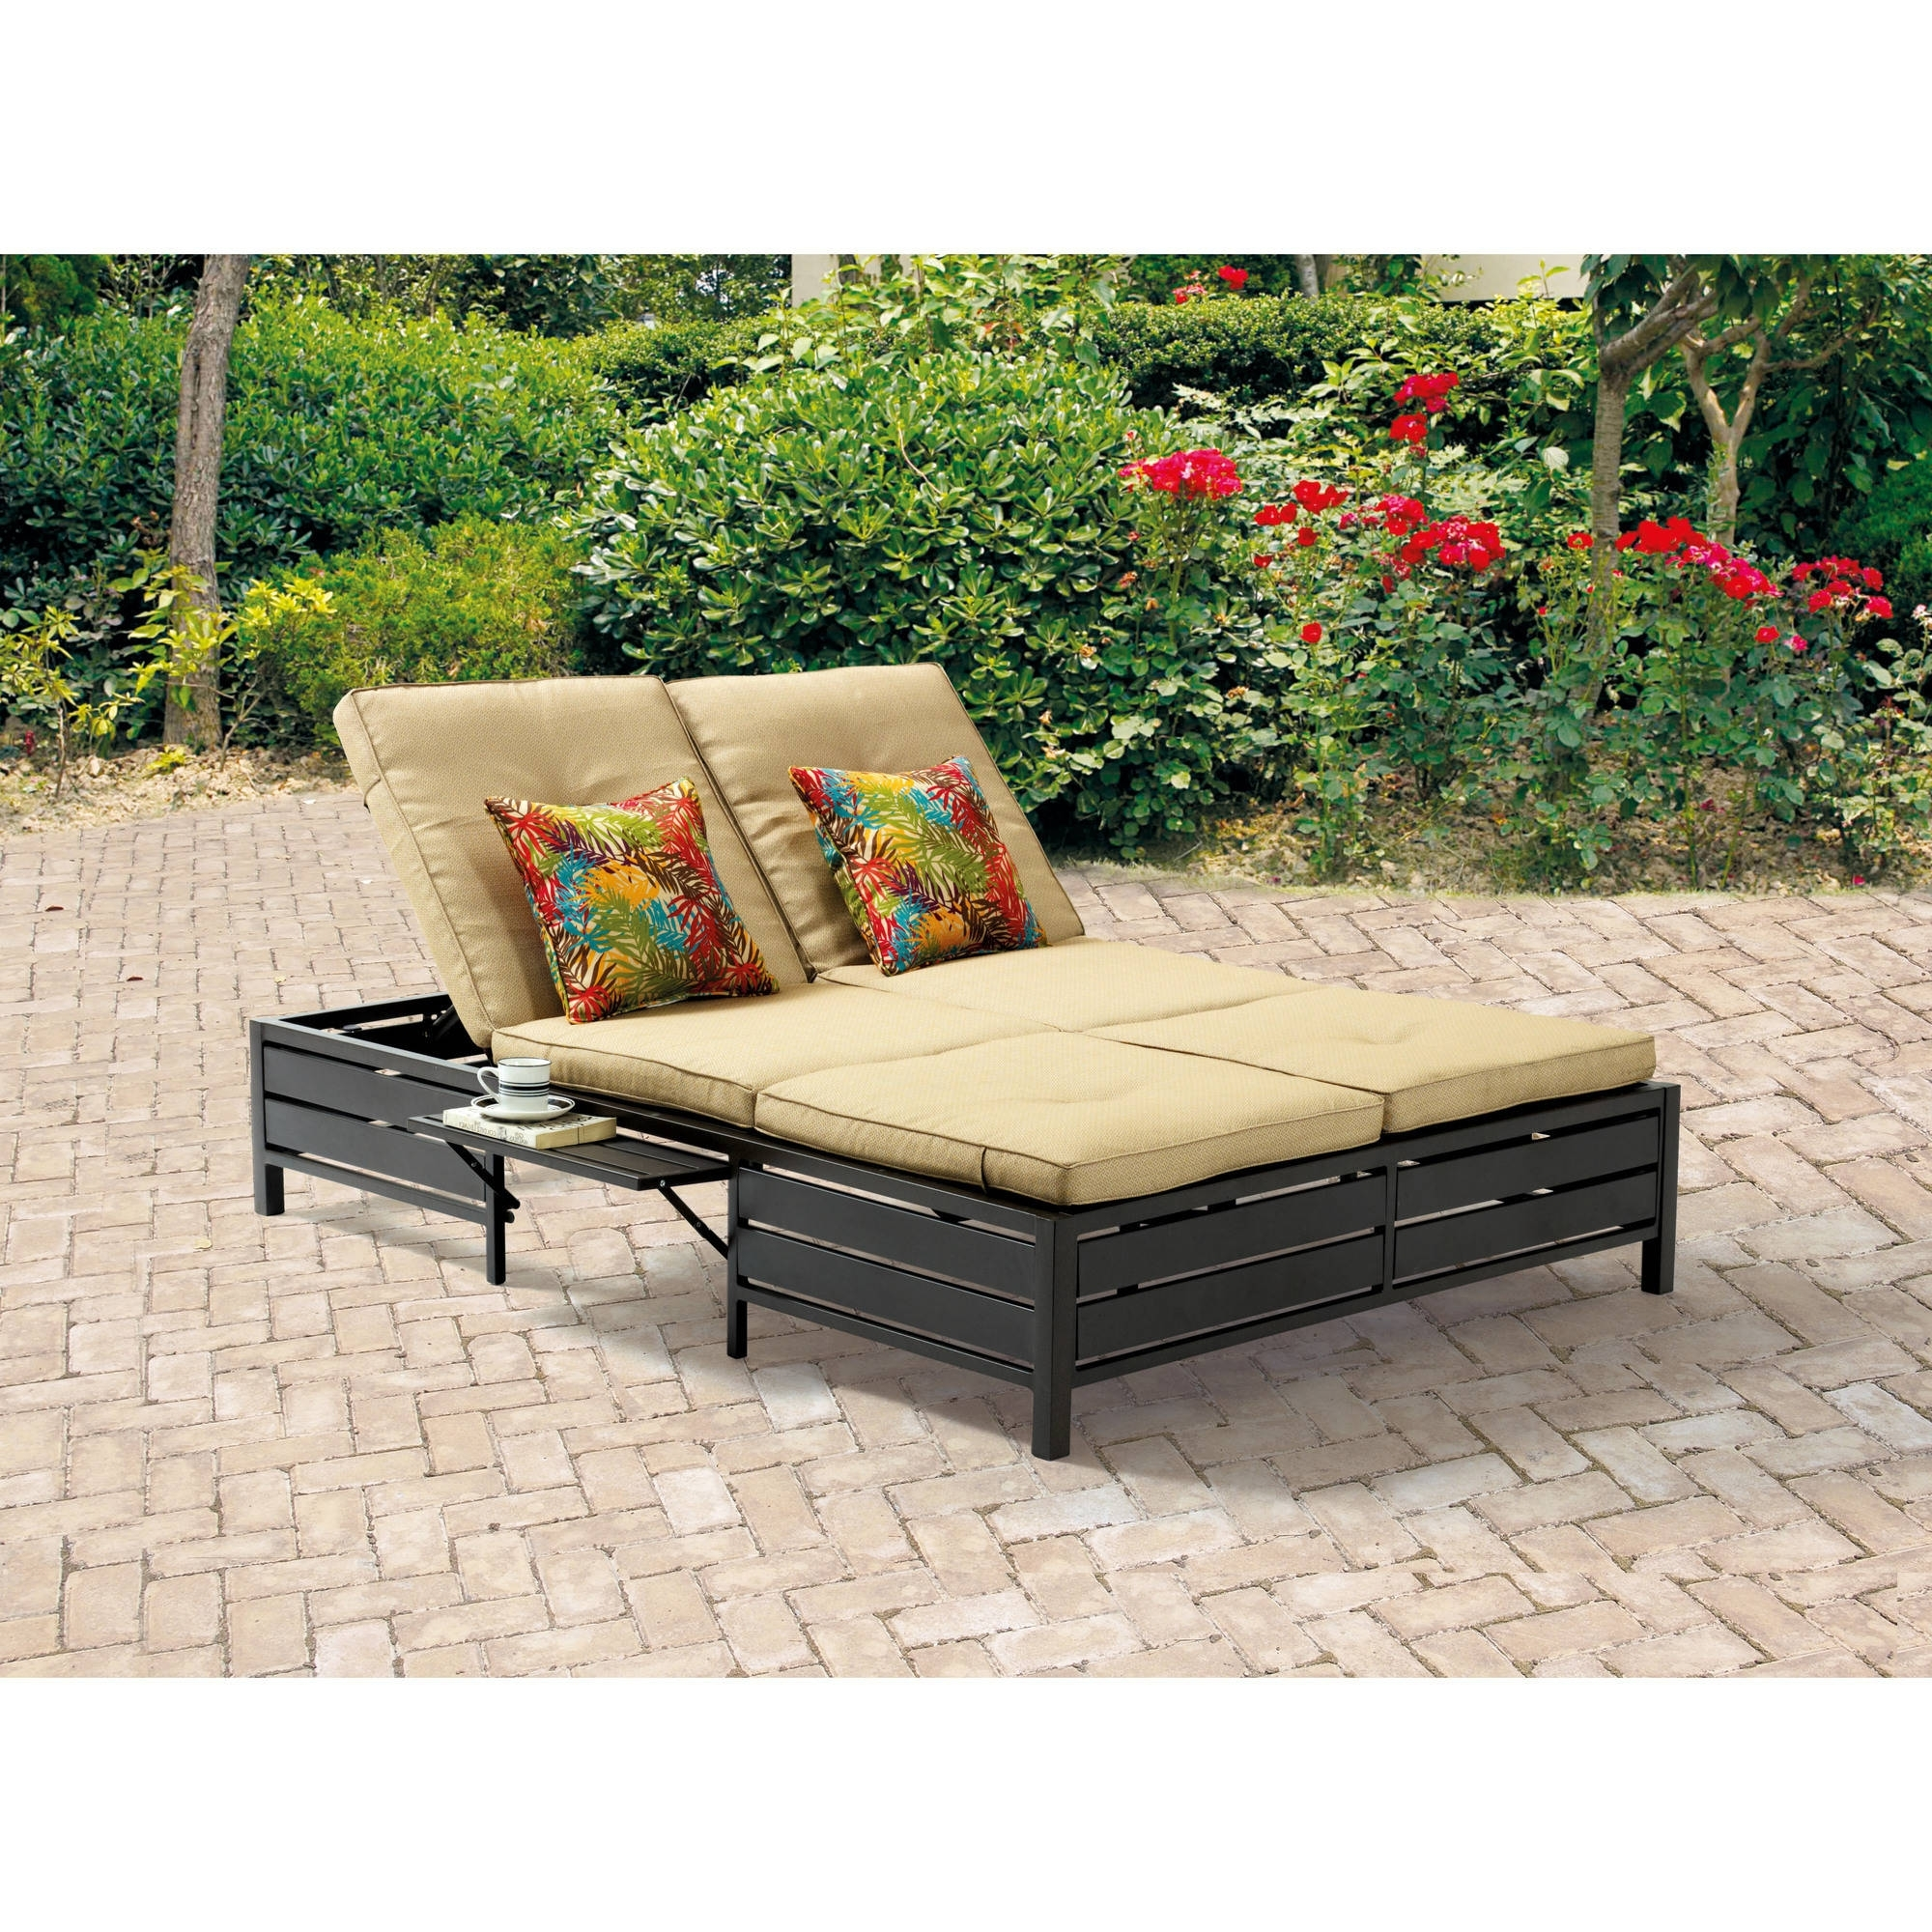 Most Popular Double Chaise Lounges For Outdoor With Regard To Mainstays Outdoor Double Chaise Lounger, Tan, Seats 2 – Walmart (View 14 of 15)